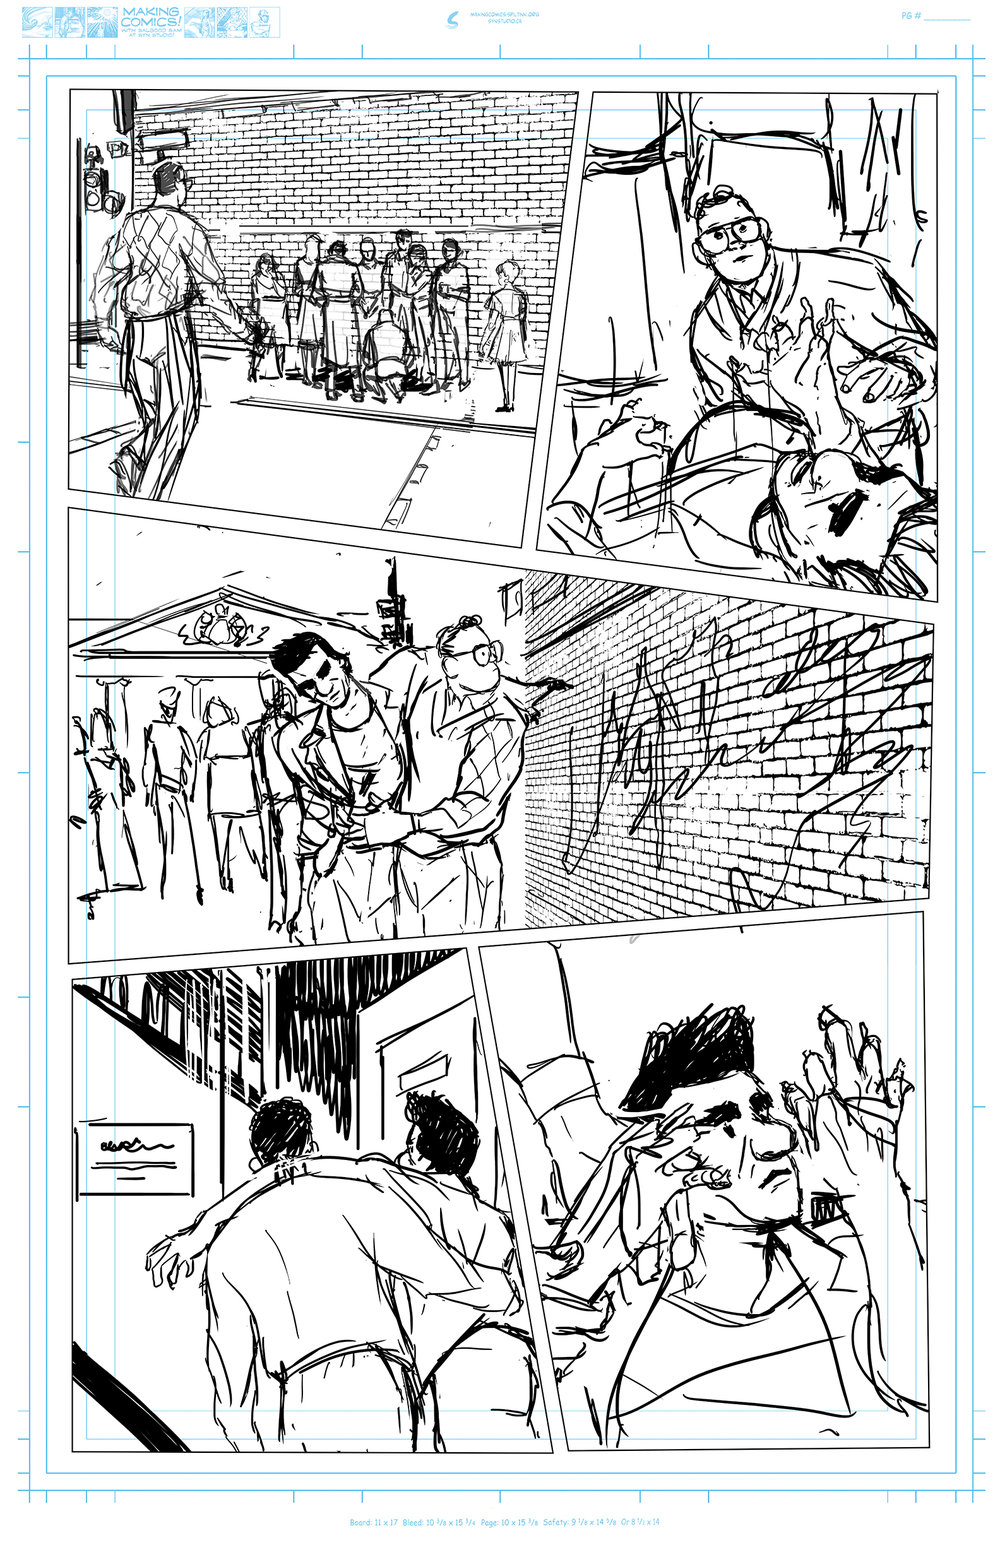 page-20-rough-02.jpg